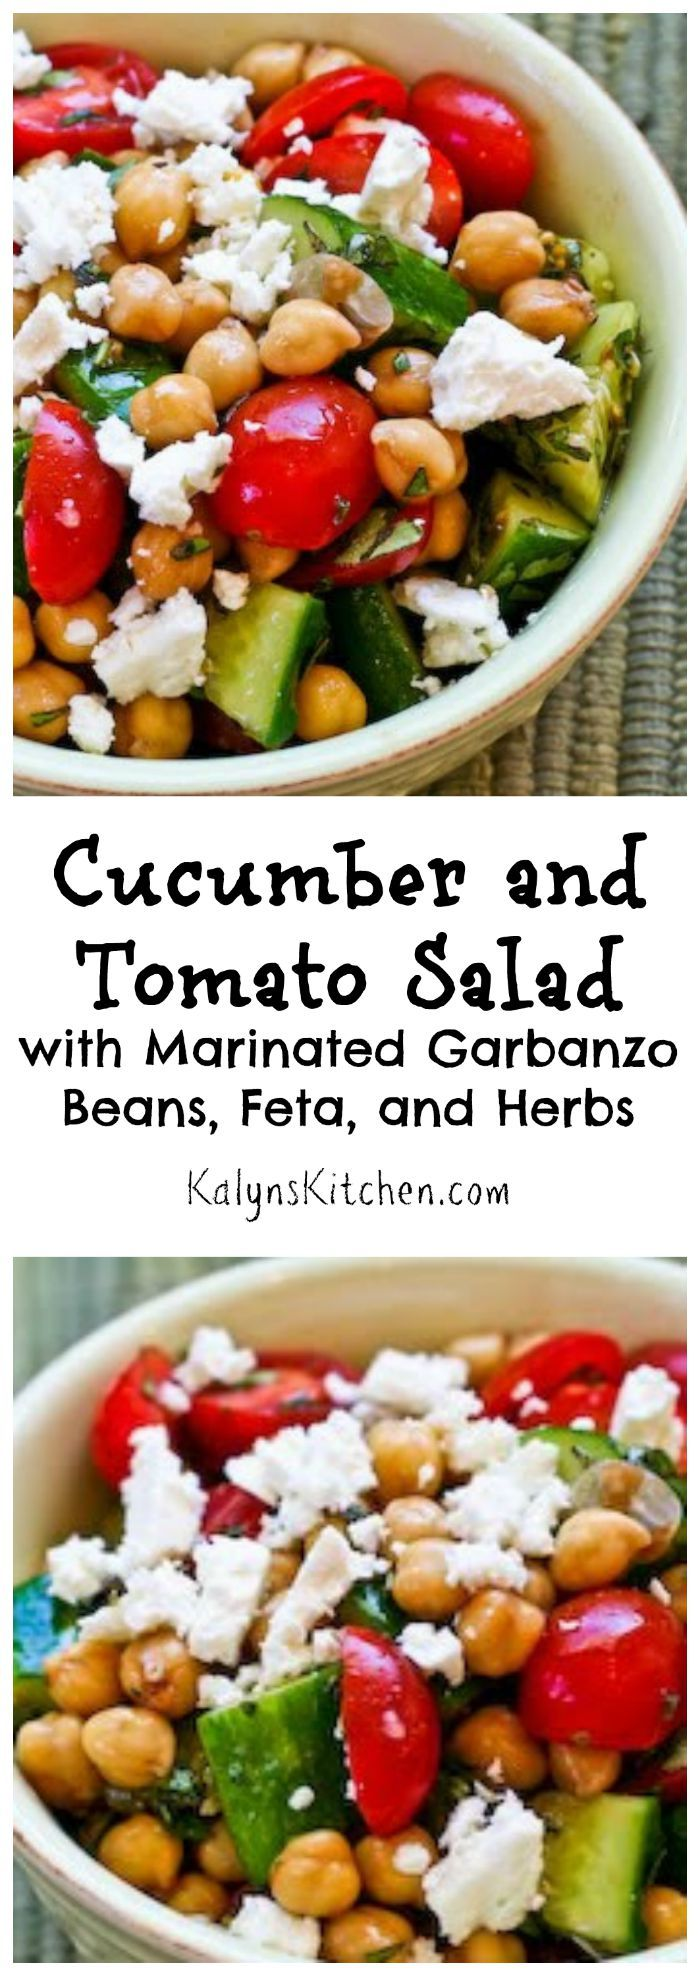 This easy Cucumber and Tomato Salad with Marinated Garbanzo Beans, Feta, and Herbs has been a huge hit on the blog. Make this for a late-summer party while the cucumbers are so great. [from KalynsKitchen.com]